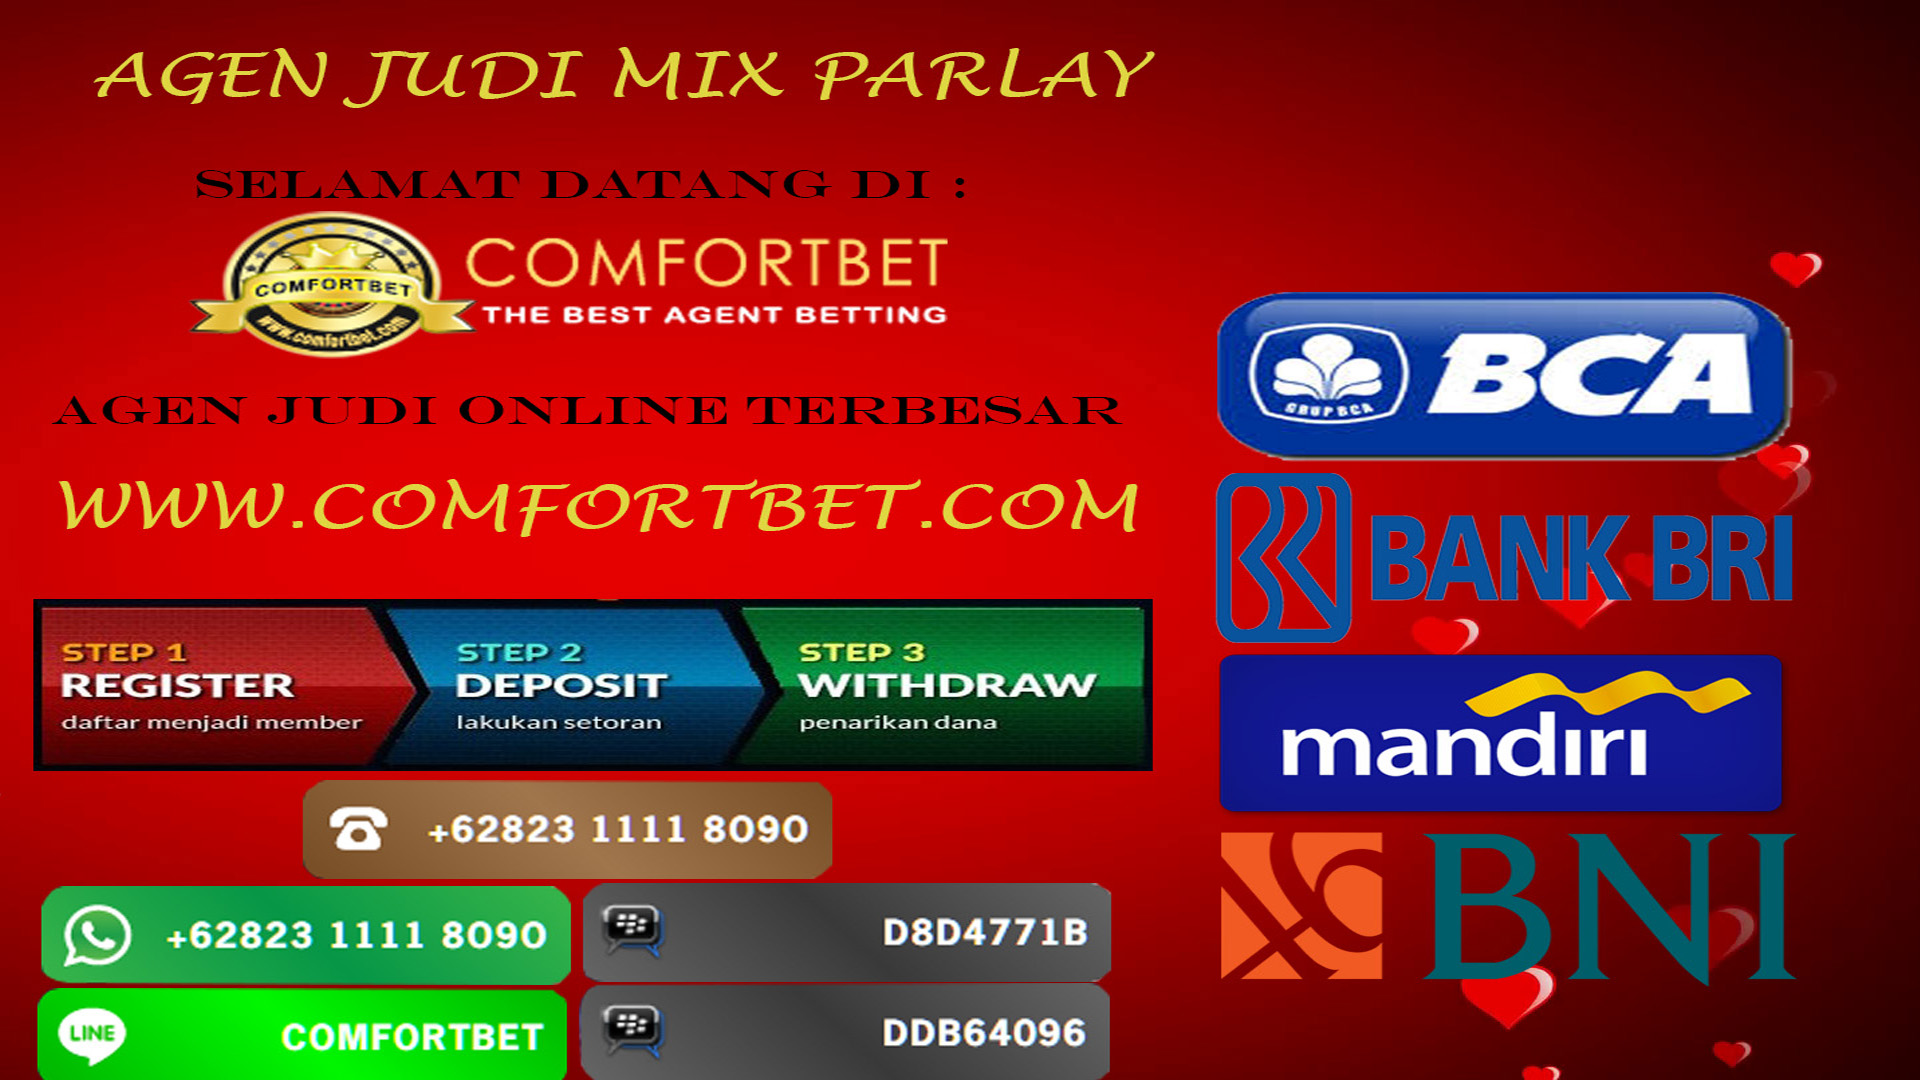 agen mix parlay online, bola mixparlay online